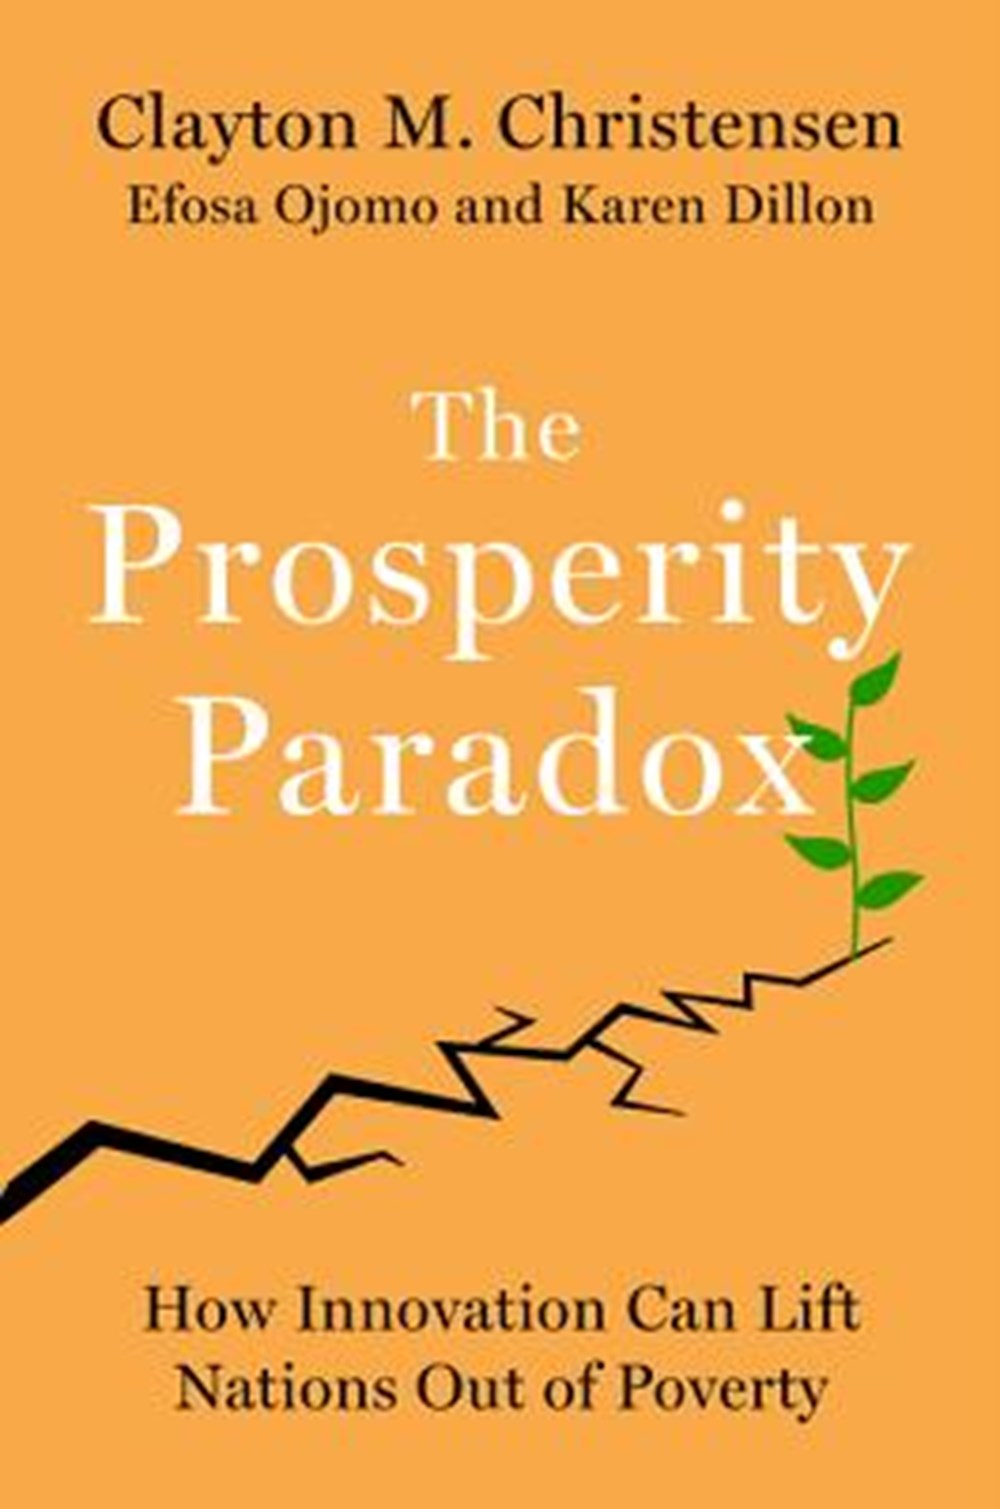 Prosperity Paradox How Innovation Can Lift Nations Out of Poverty